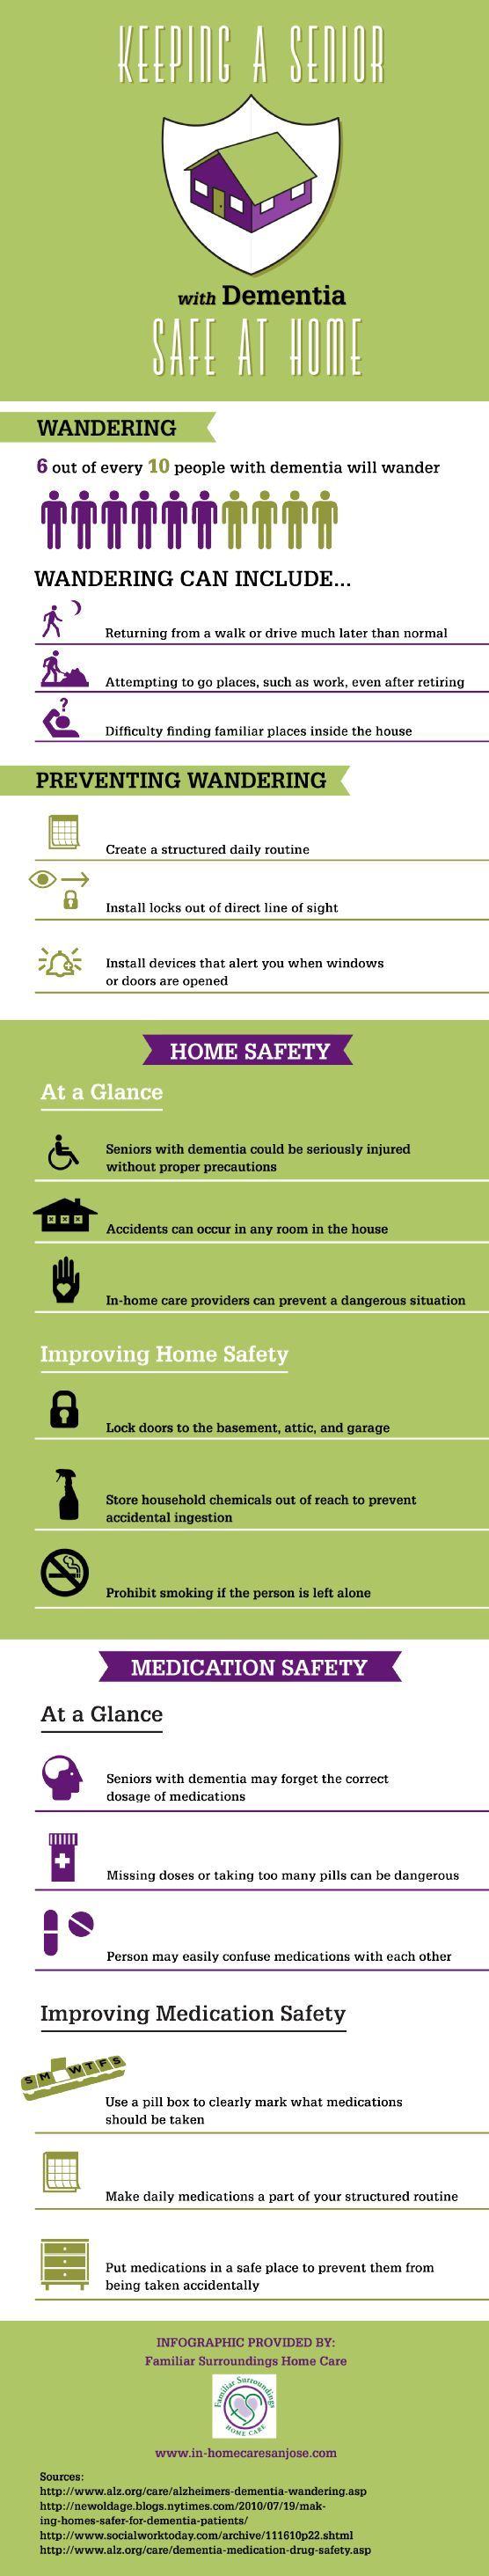 17 Best Images About Senior Safety On Pinterest Email